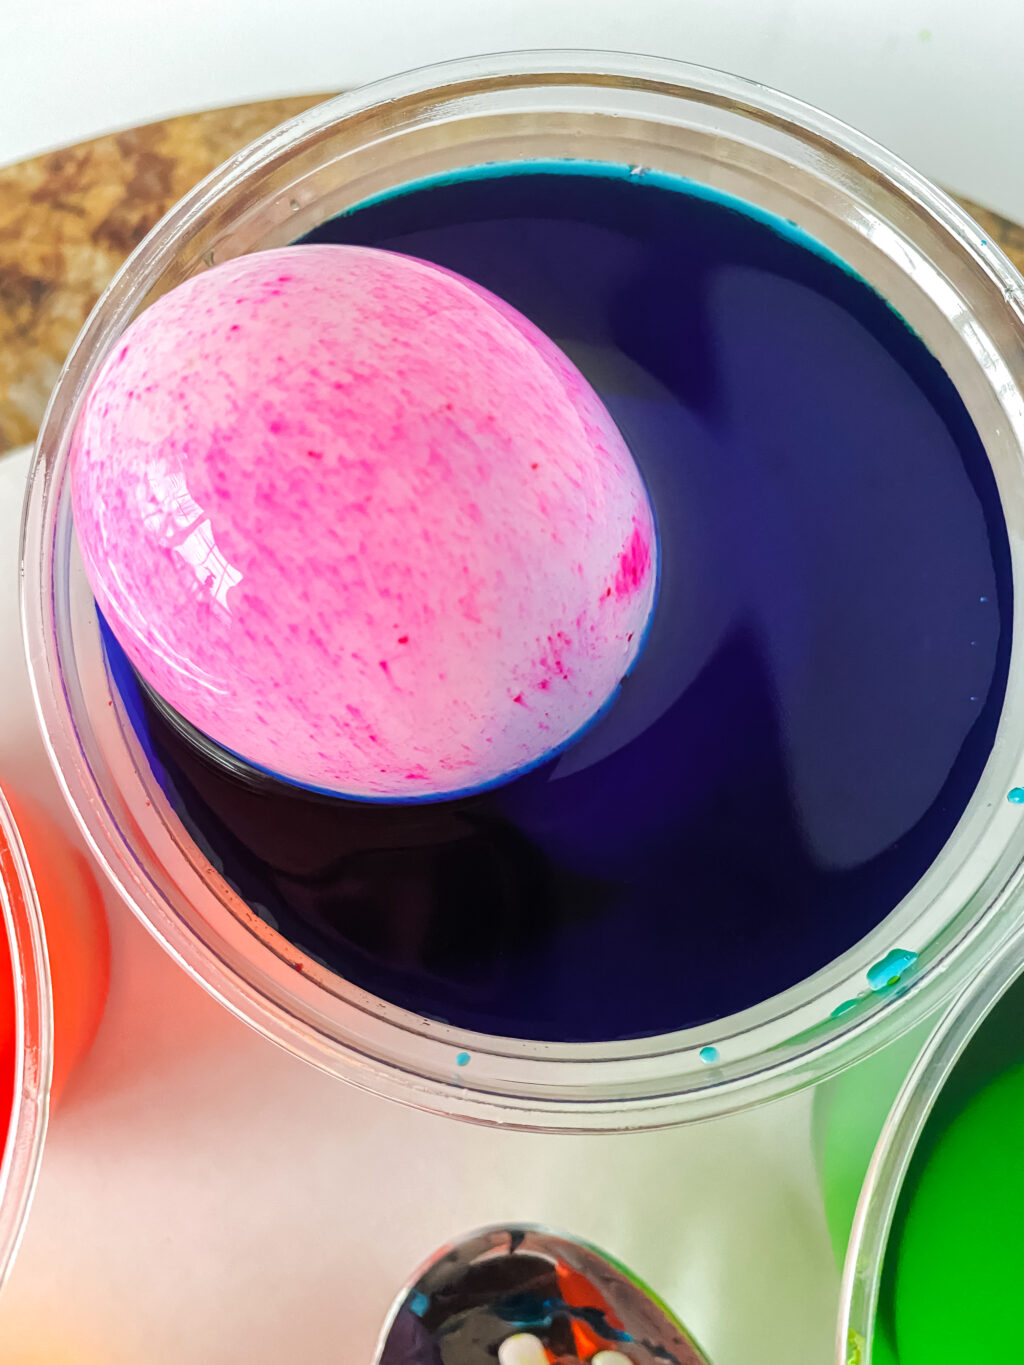 hard boiled egg being dyed in cup of food coloring